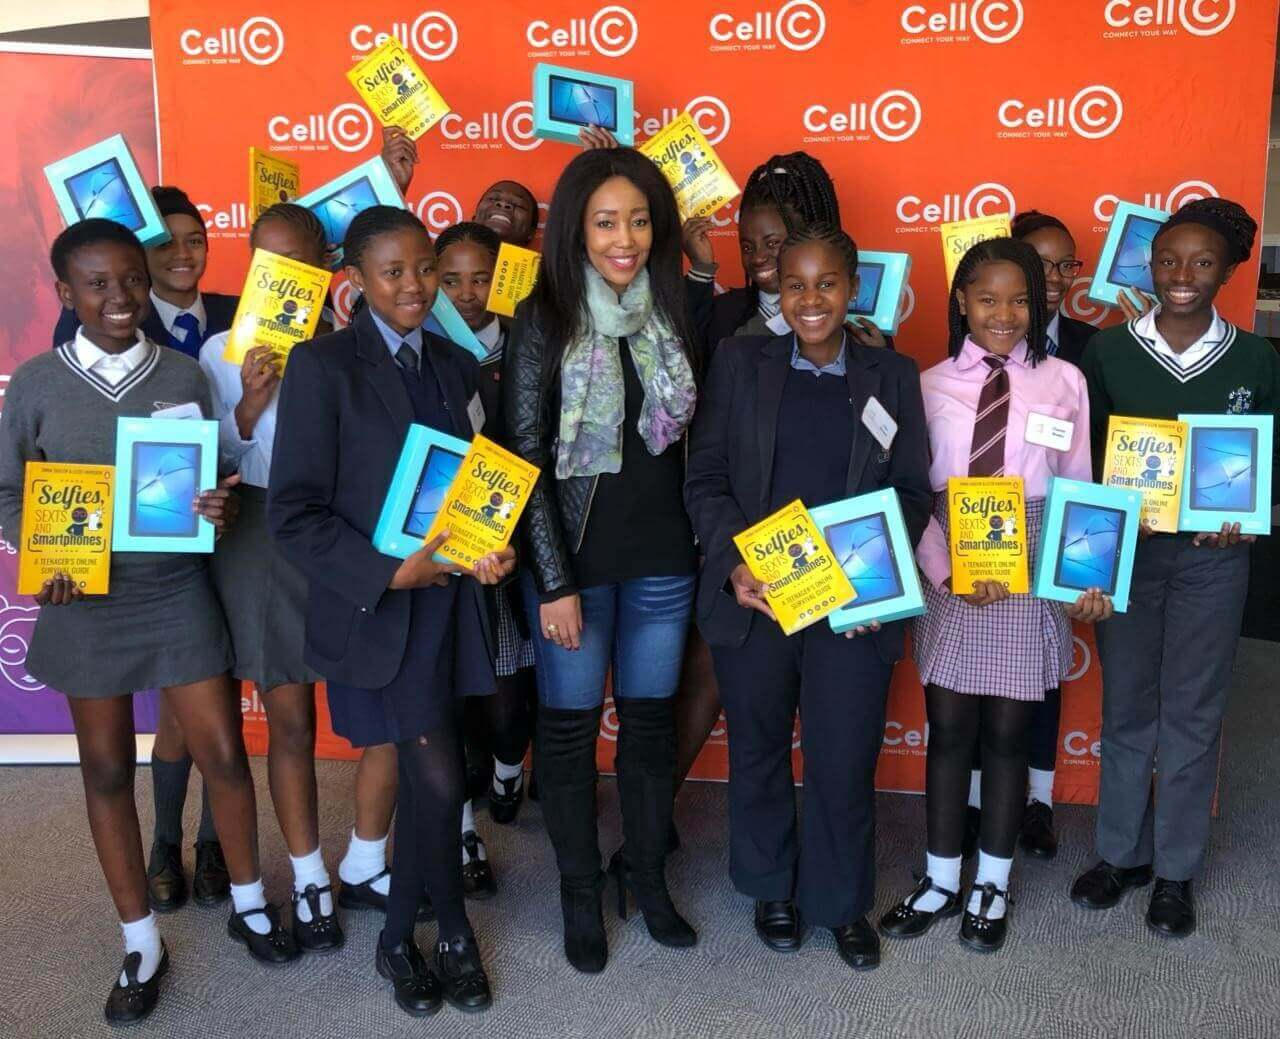 Juliet Mhango Cell C's Chief Human Capital Development and Transformation Officer With the girls